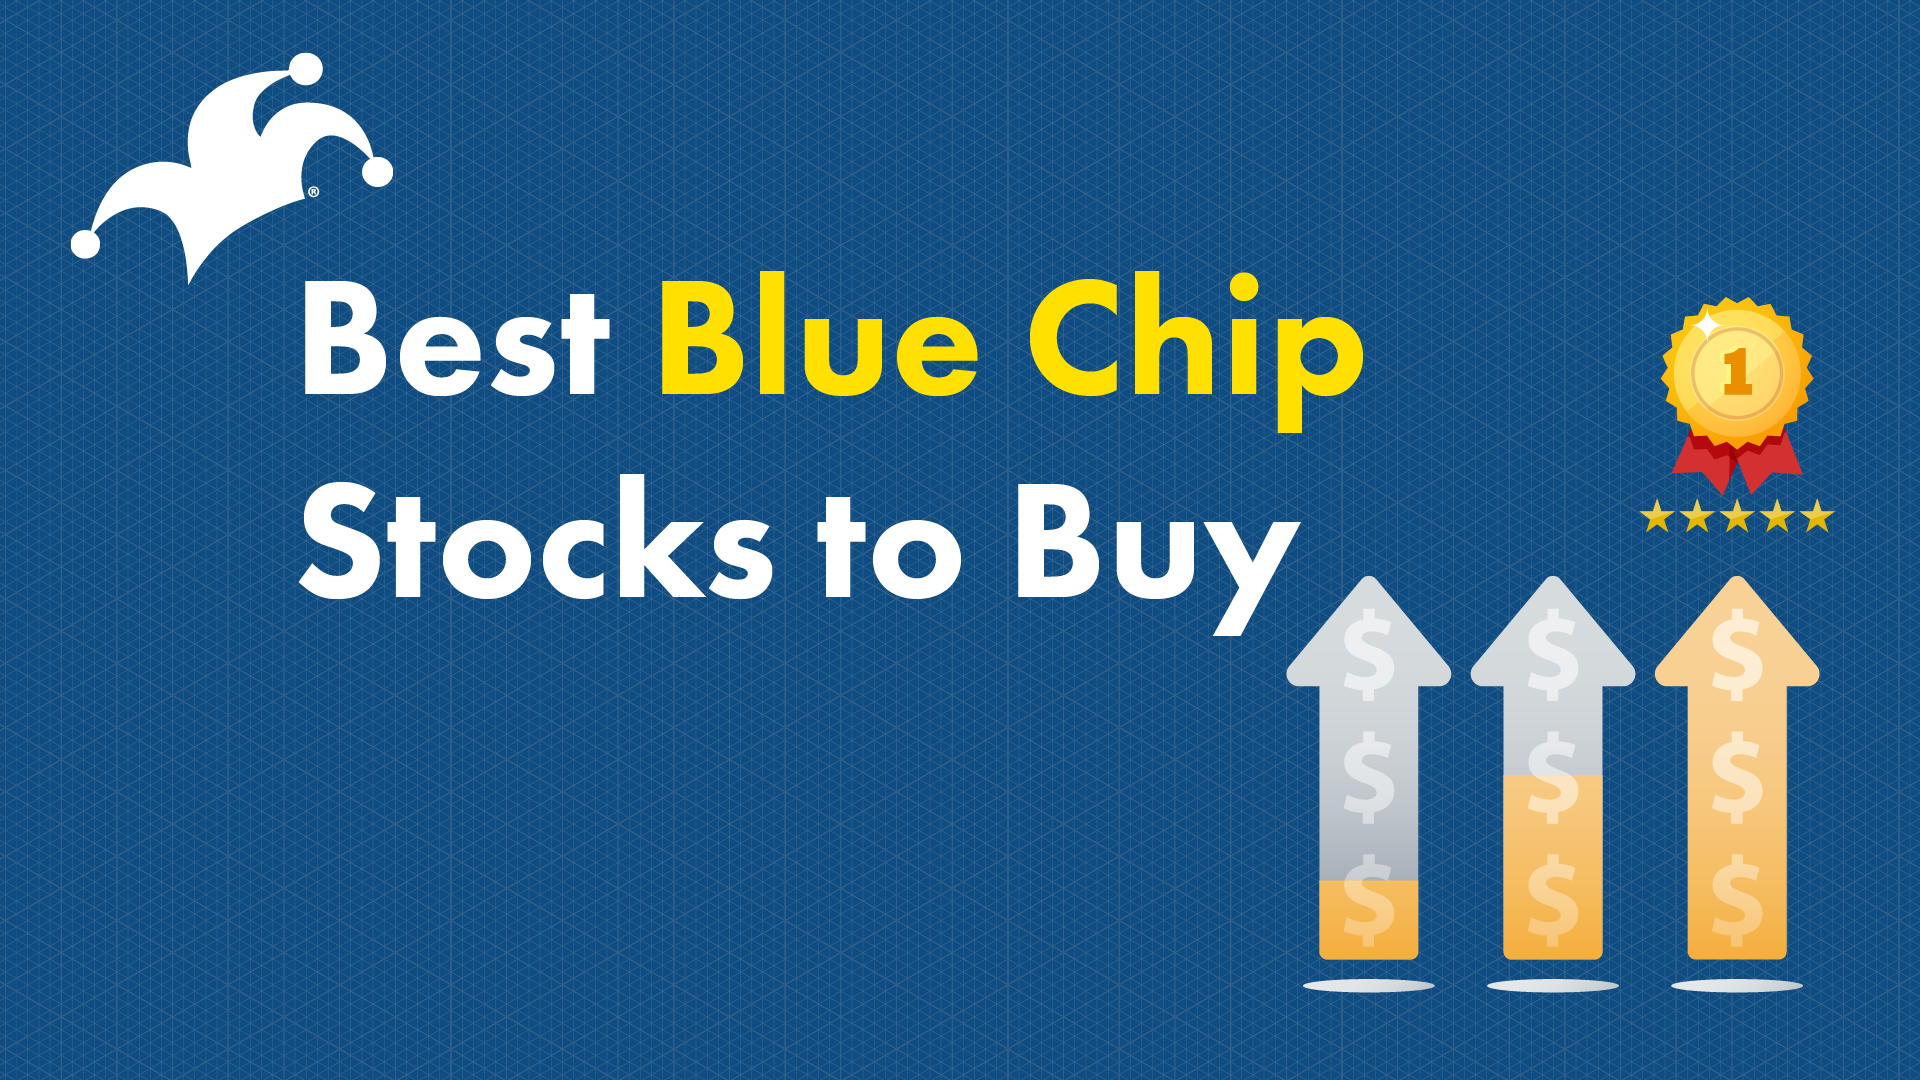 The Best Blue Chip Stocks to Buy for 2020 | The Motley Fool